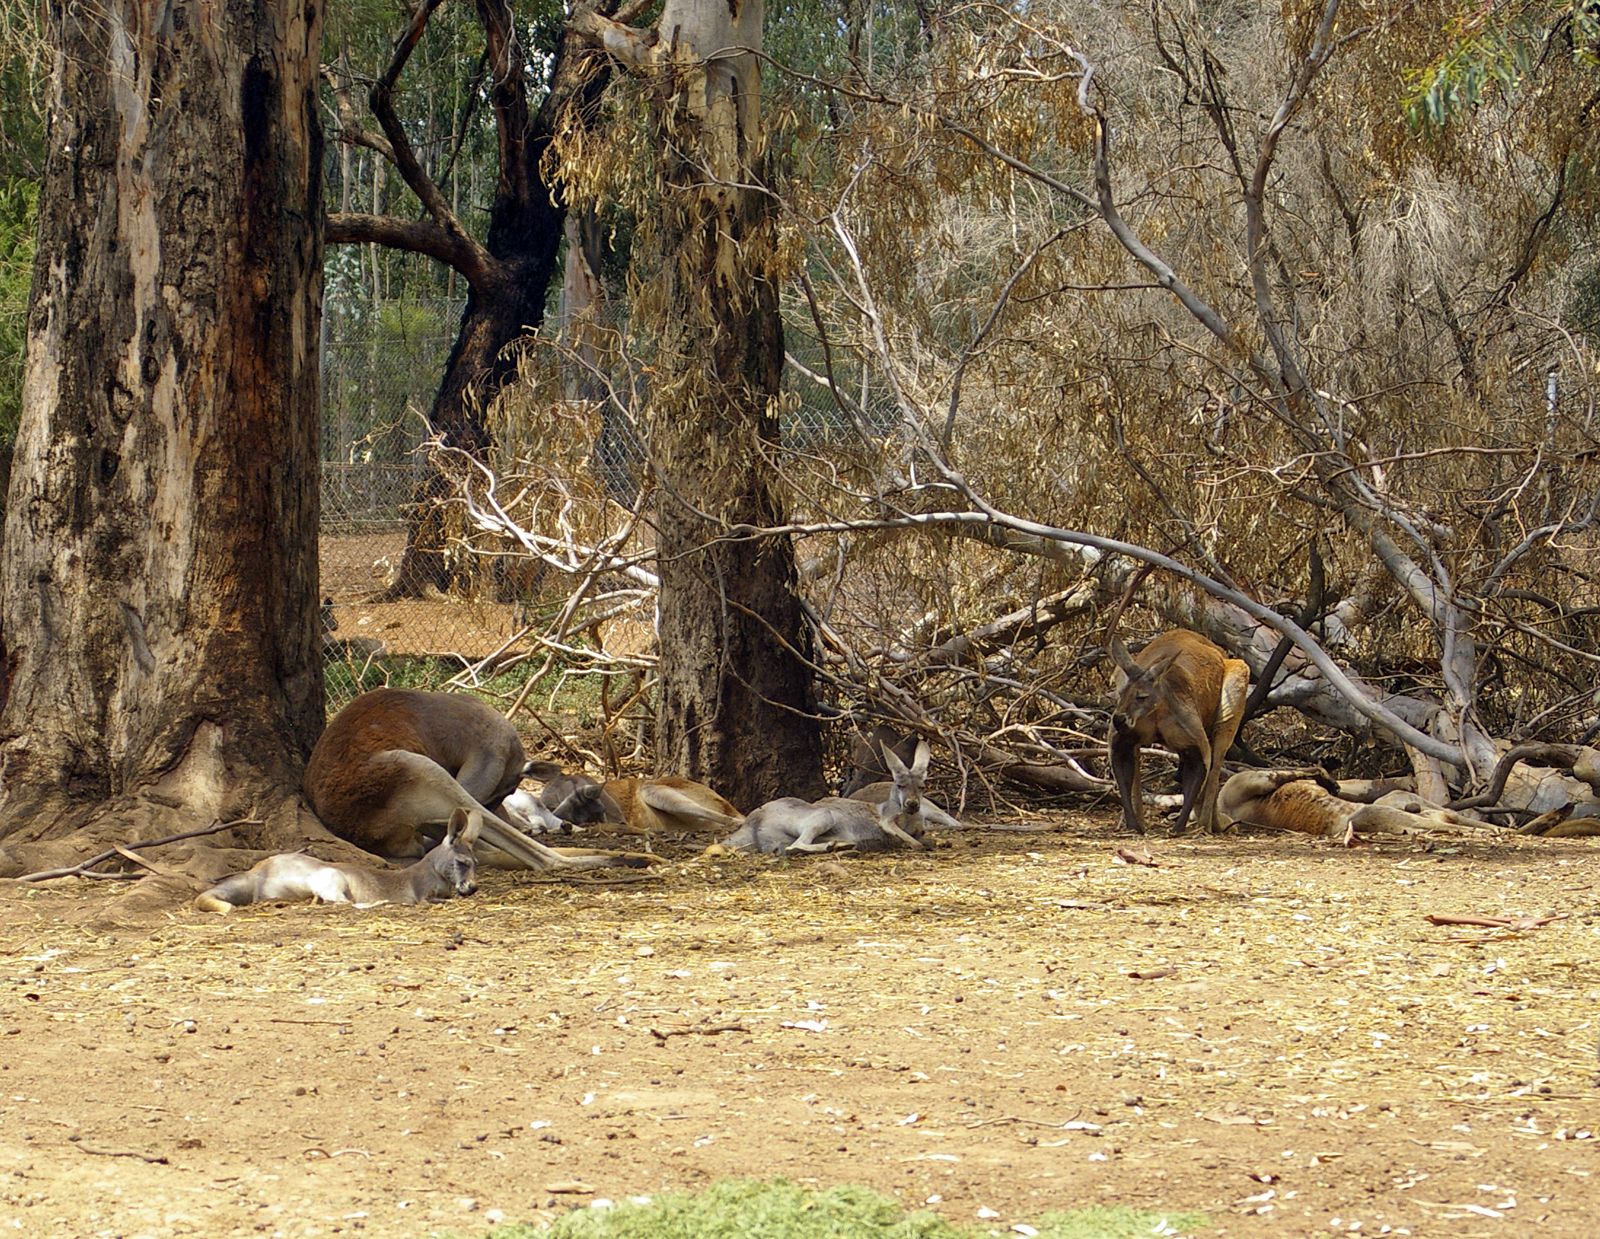 Mob of male and female Red Kangaroos (Macropus rufus) at the Wagga Wagga Botanic Gardens. Photo taken on January 5, 2010.